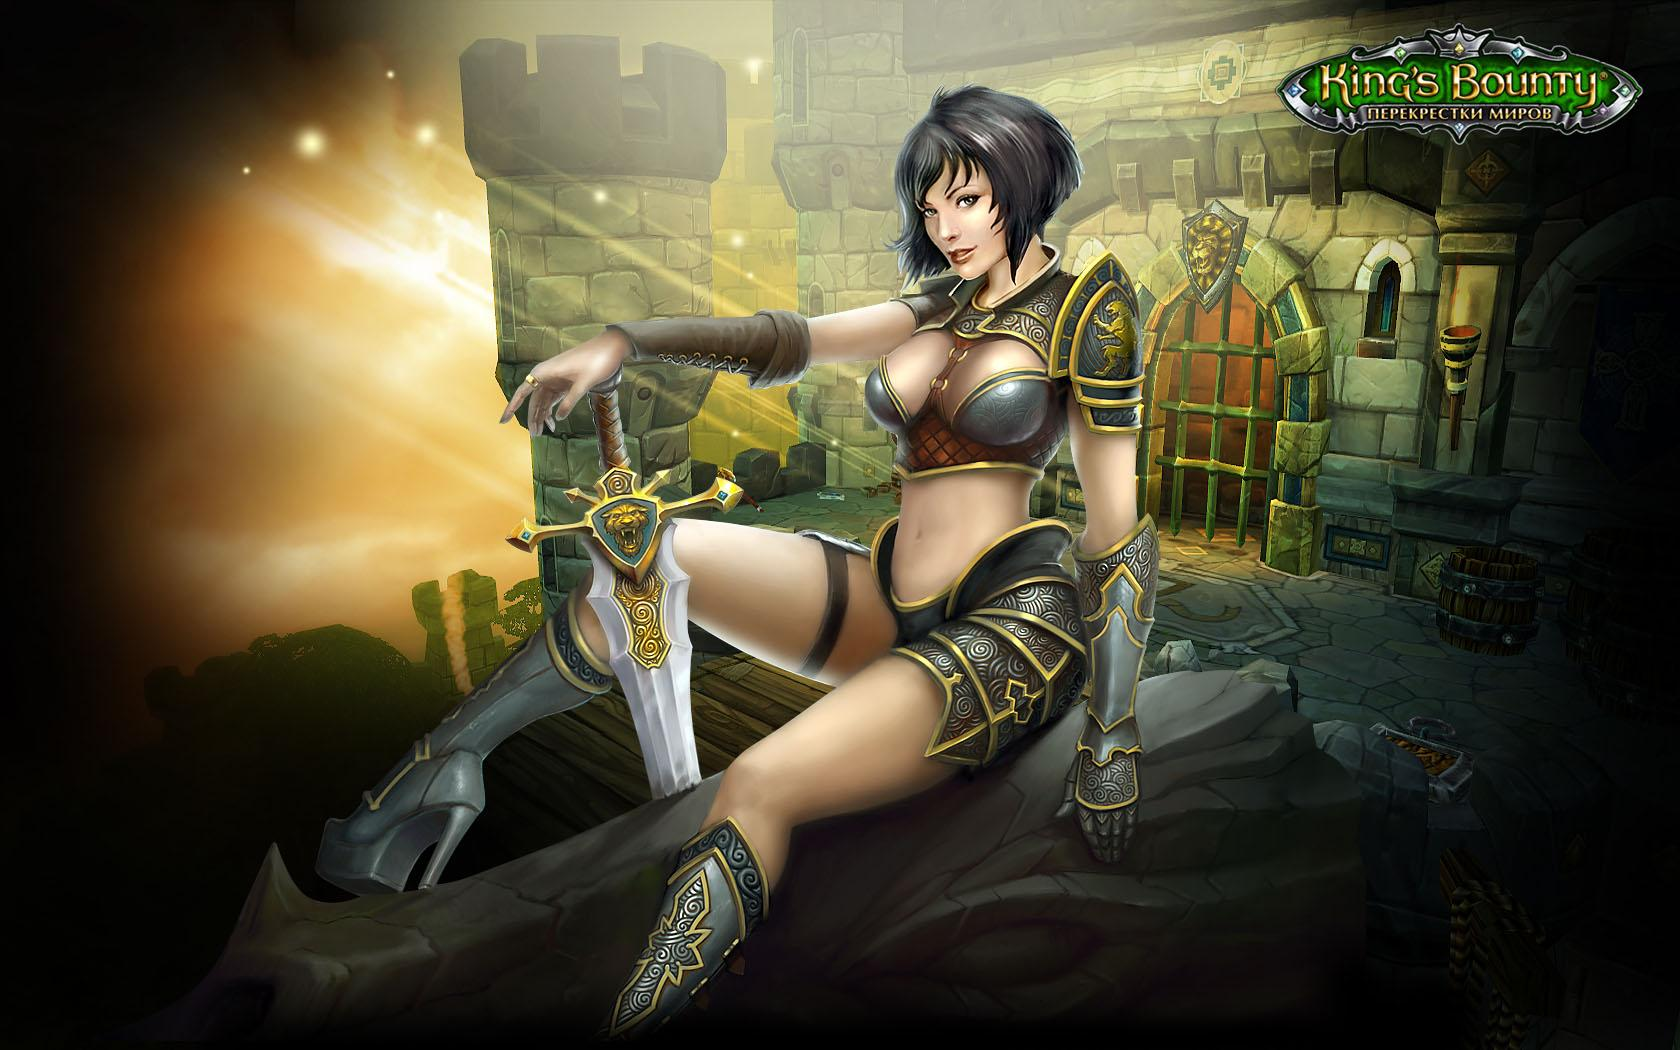 50 Games Like King&apos;s Bounty for IOS <a href=